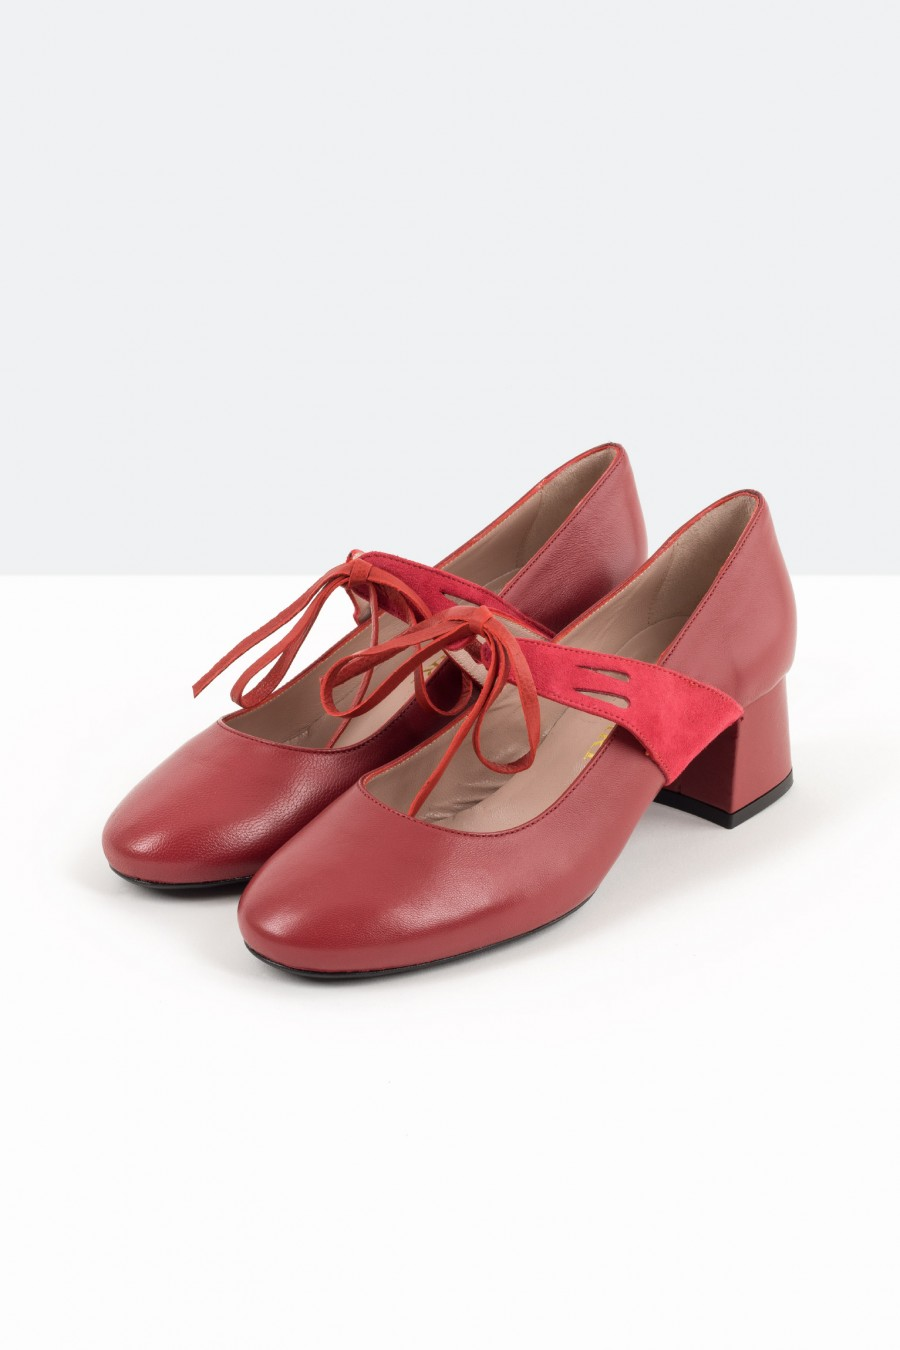 Red leather bebè shoes